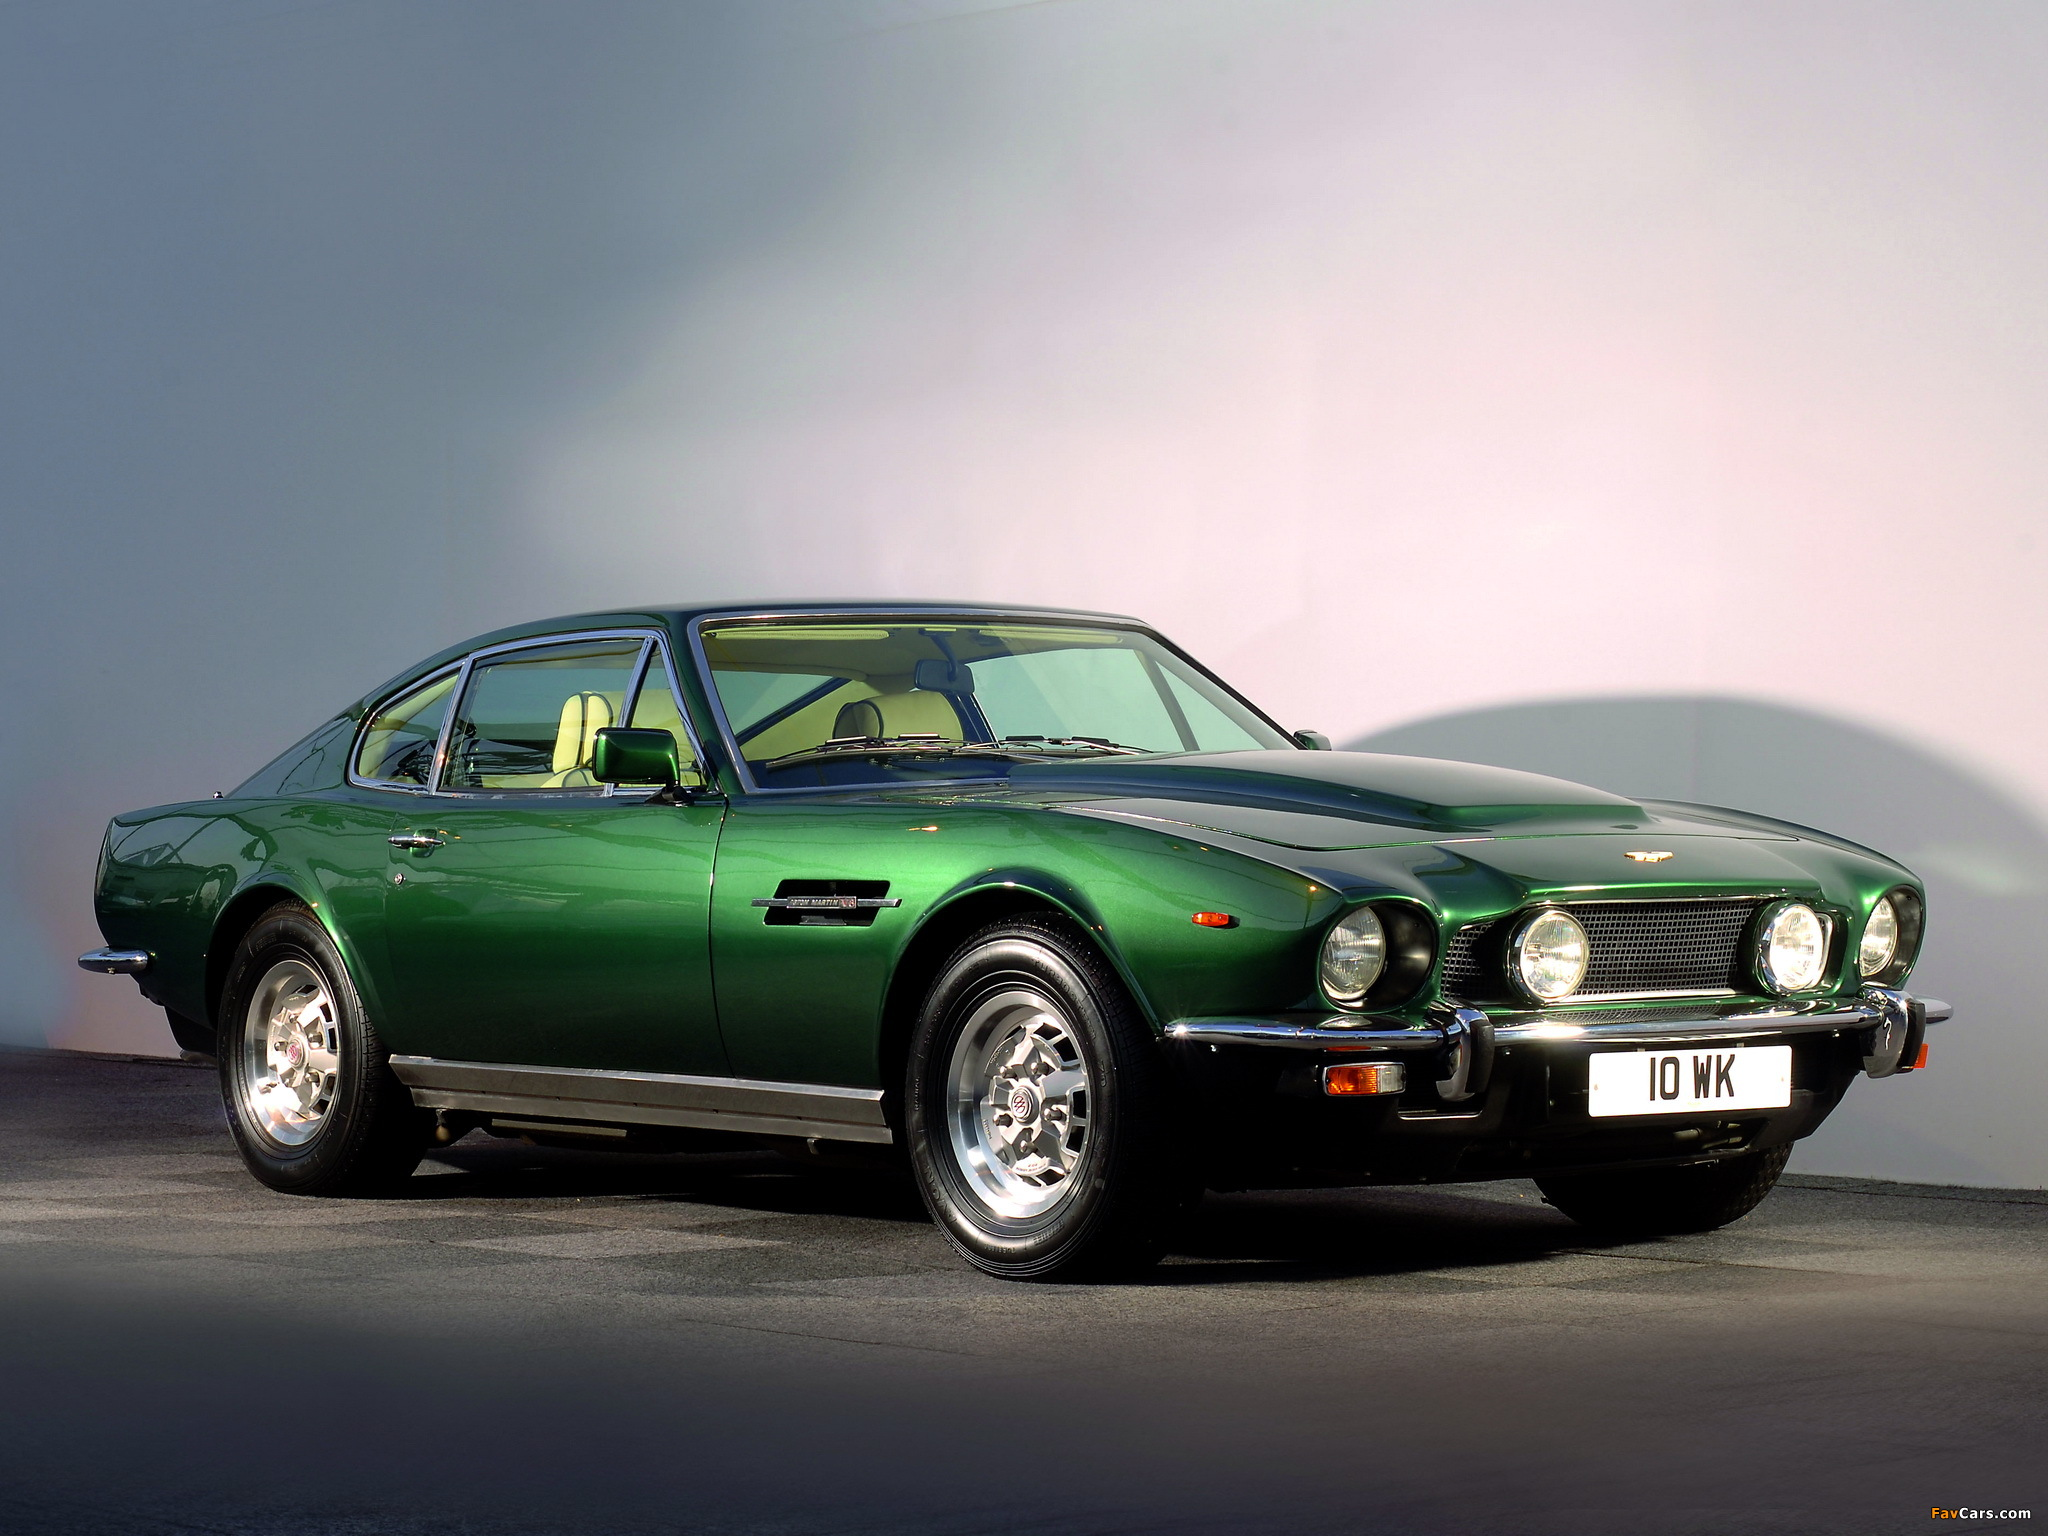 103 Aston Martin V8 Vantage HD Wallpapers | Background Images ...